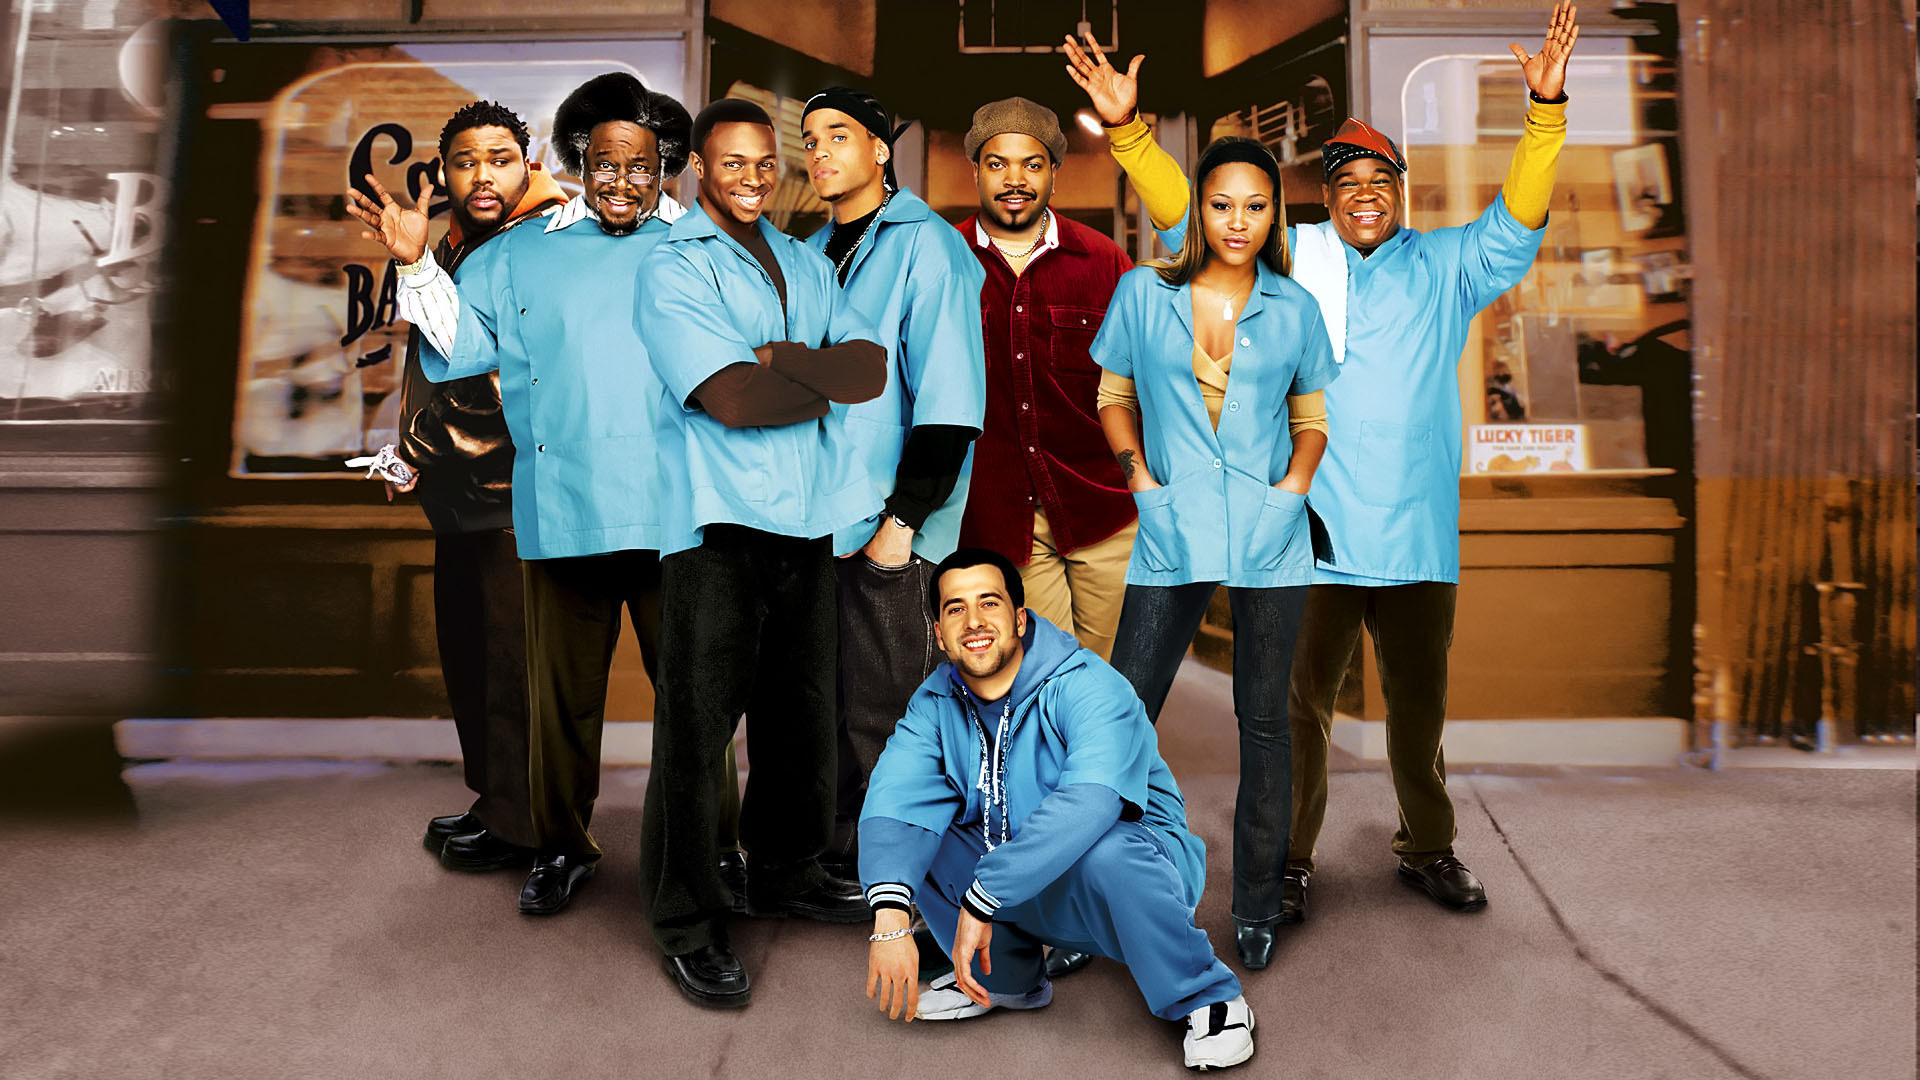 Barbershop 3 News